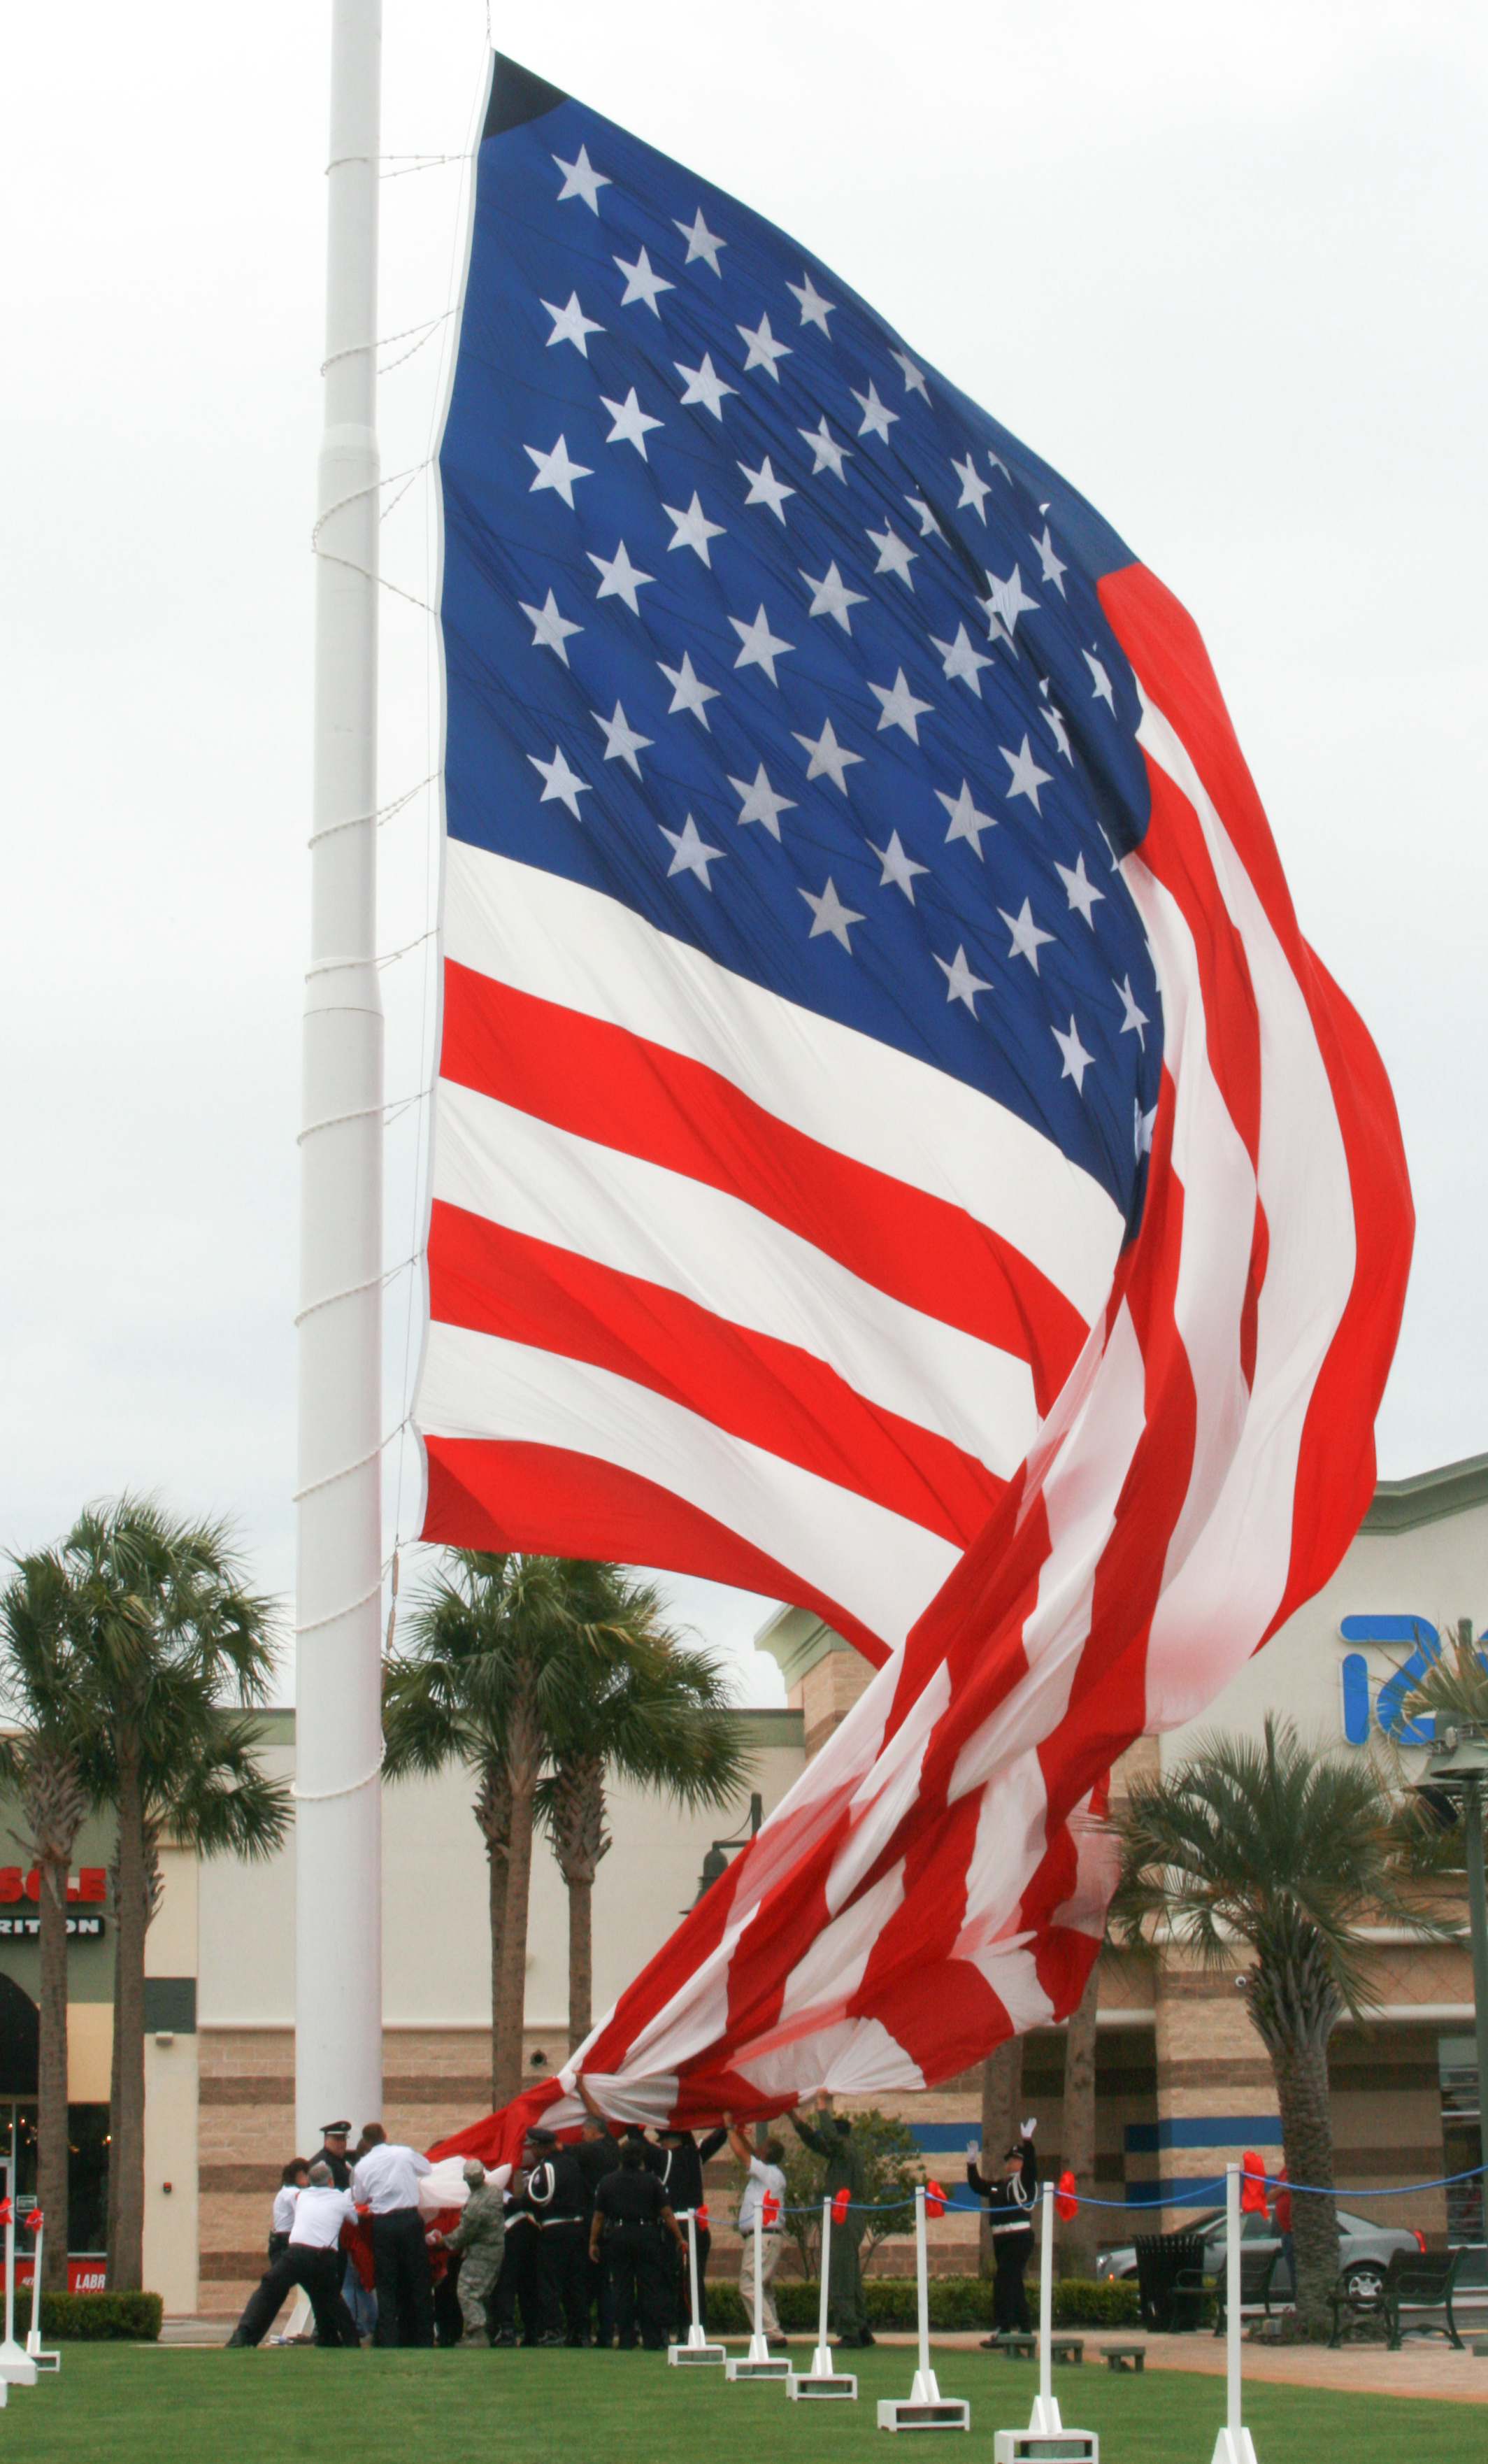 fort walton beach flag today